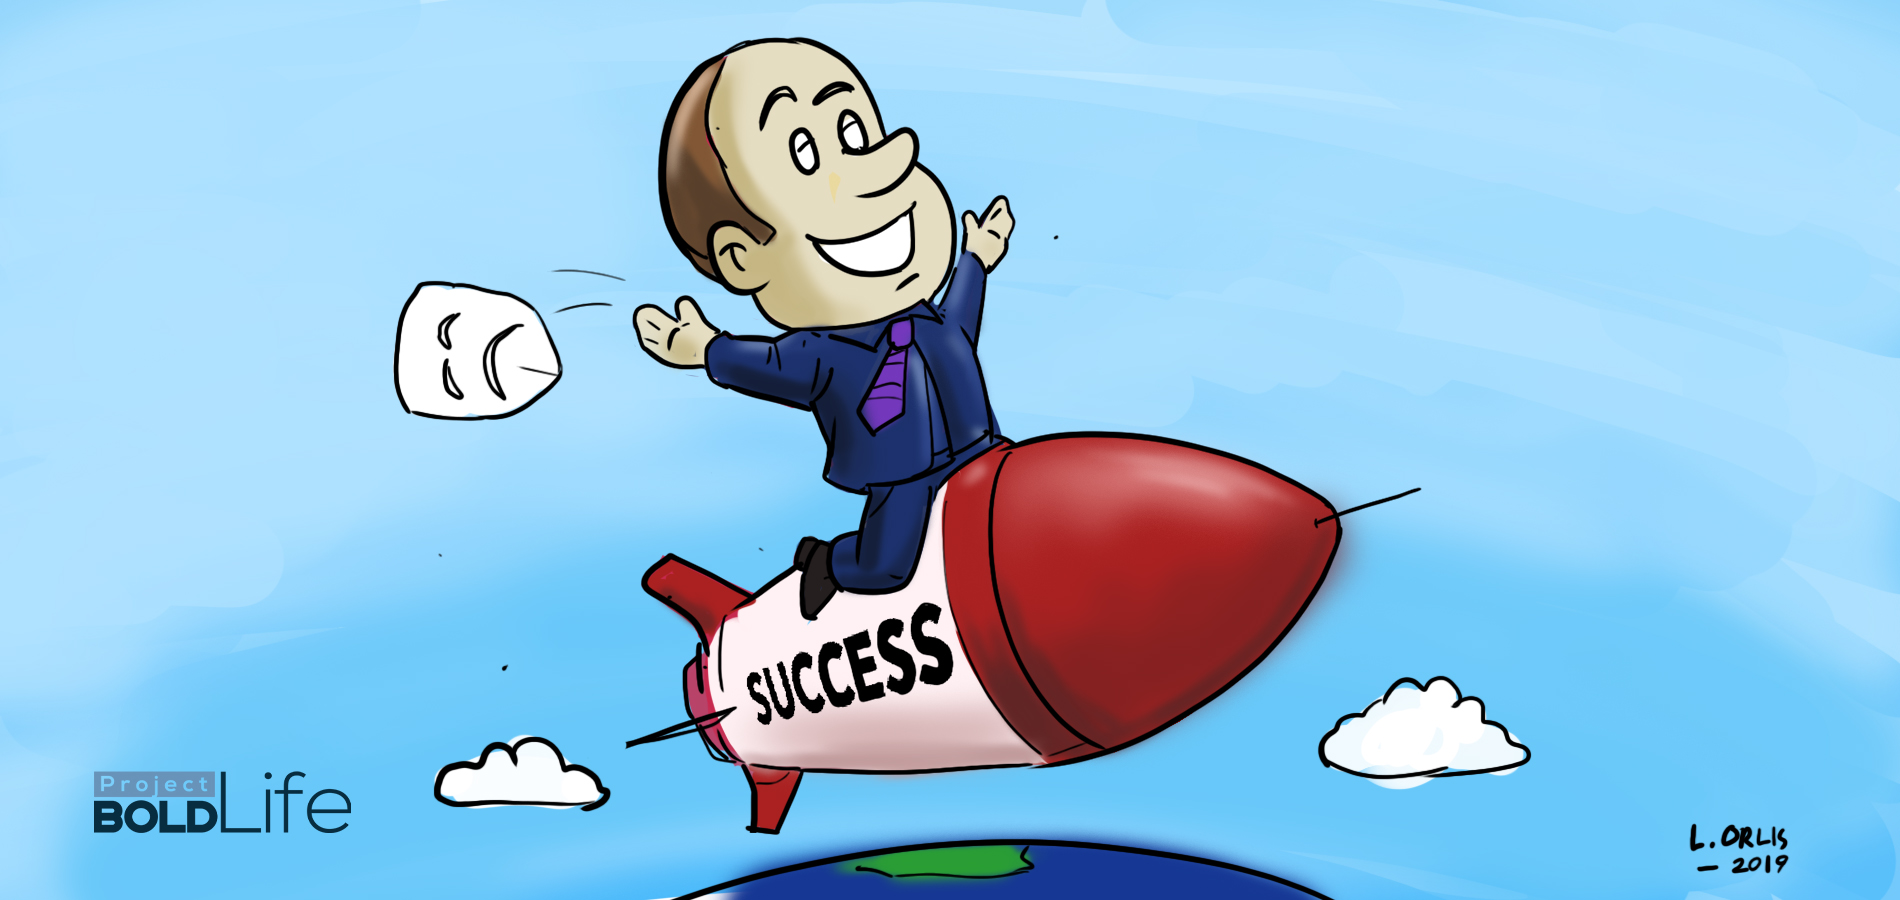 cartoon of a man overcoming depression with the use of goal-setting strategies while he's riding a SUCCESS spaceship